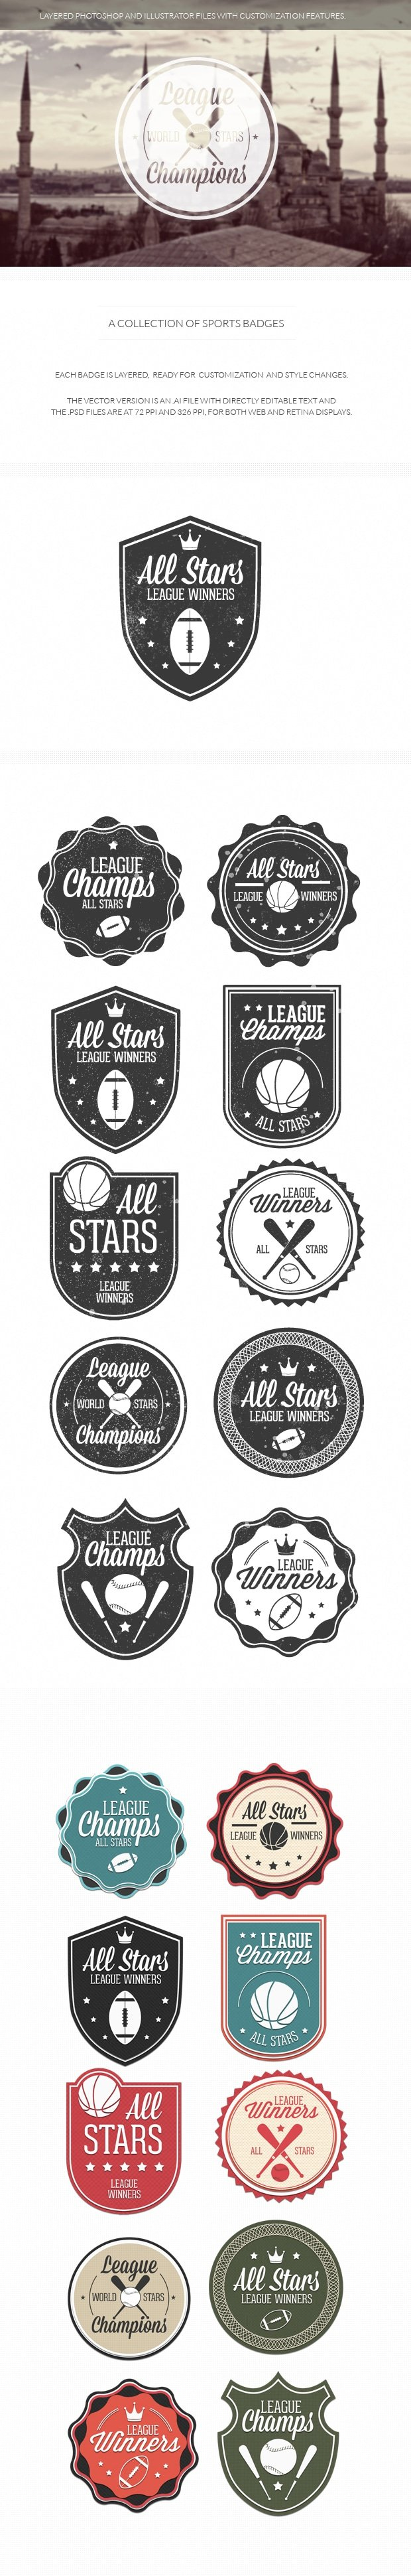 203 Super Premium Badges